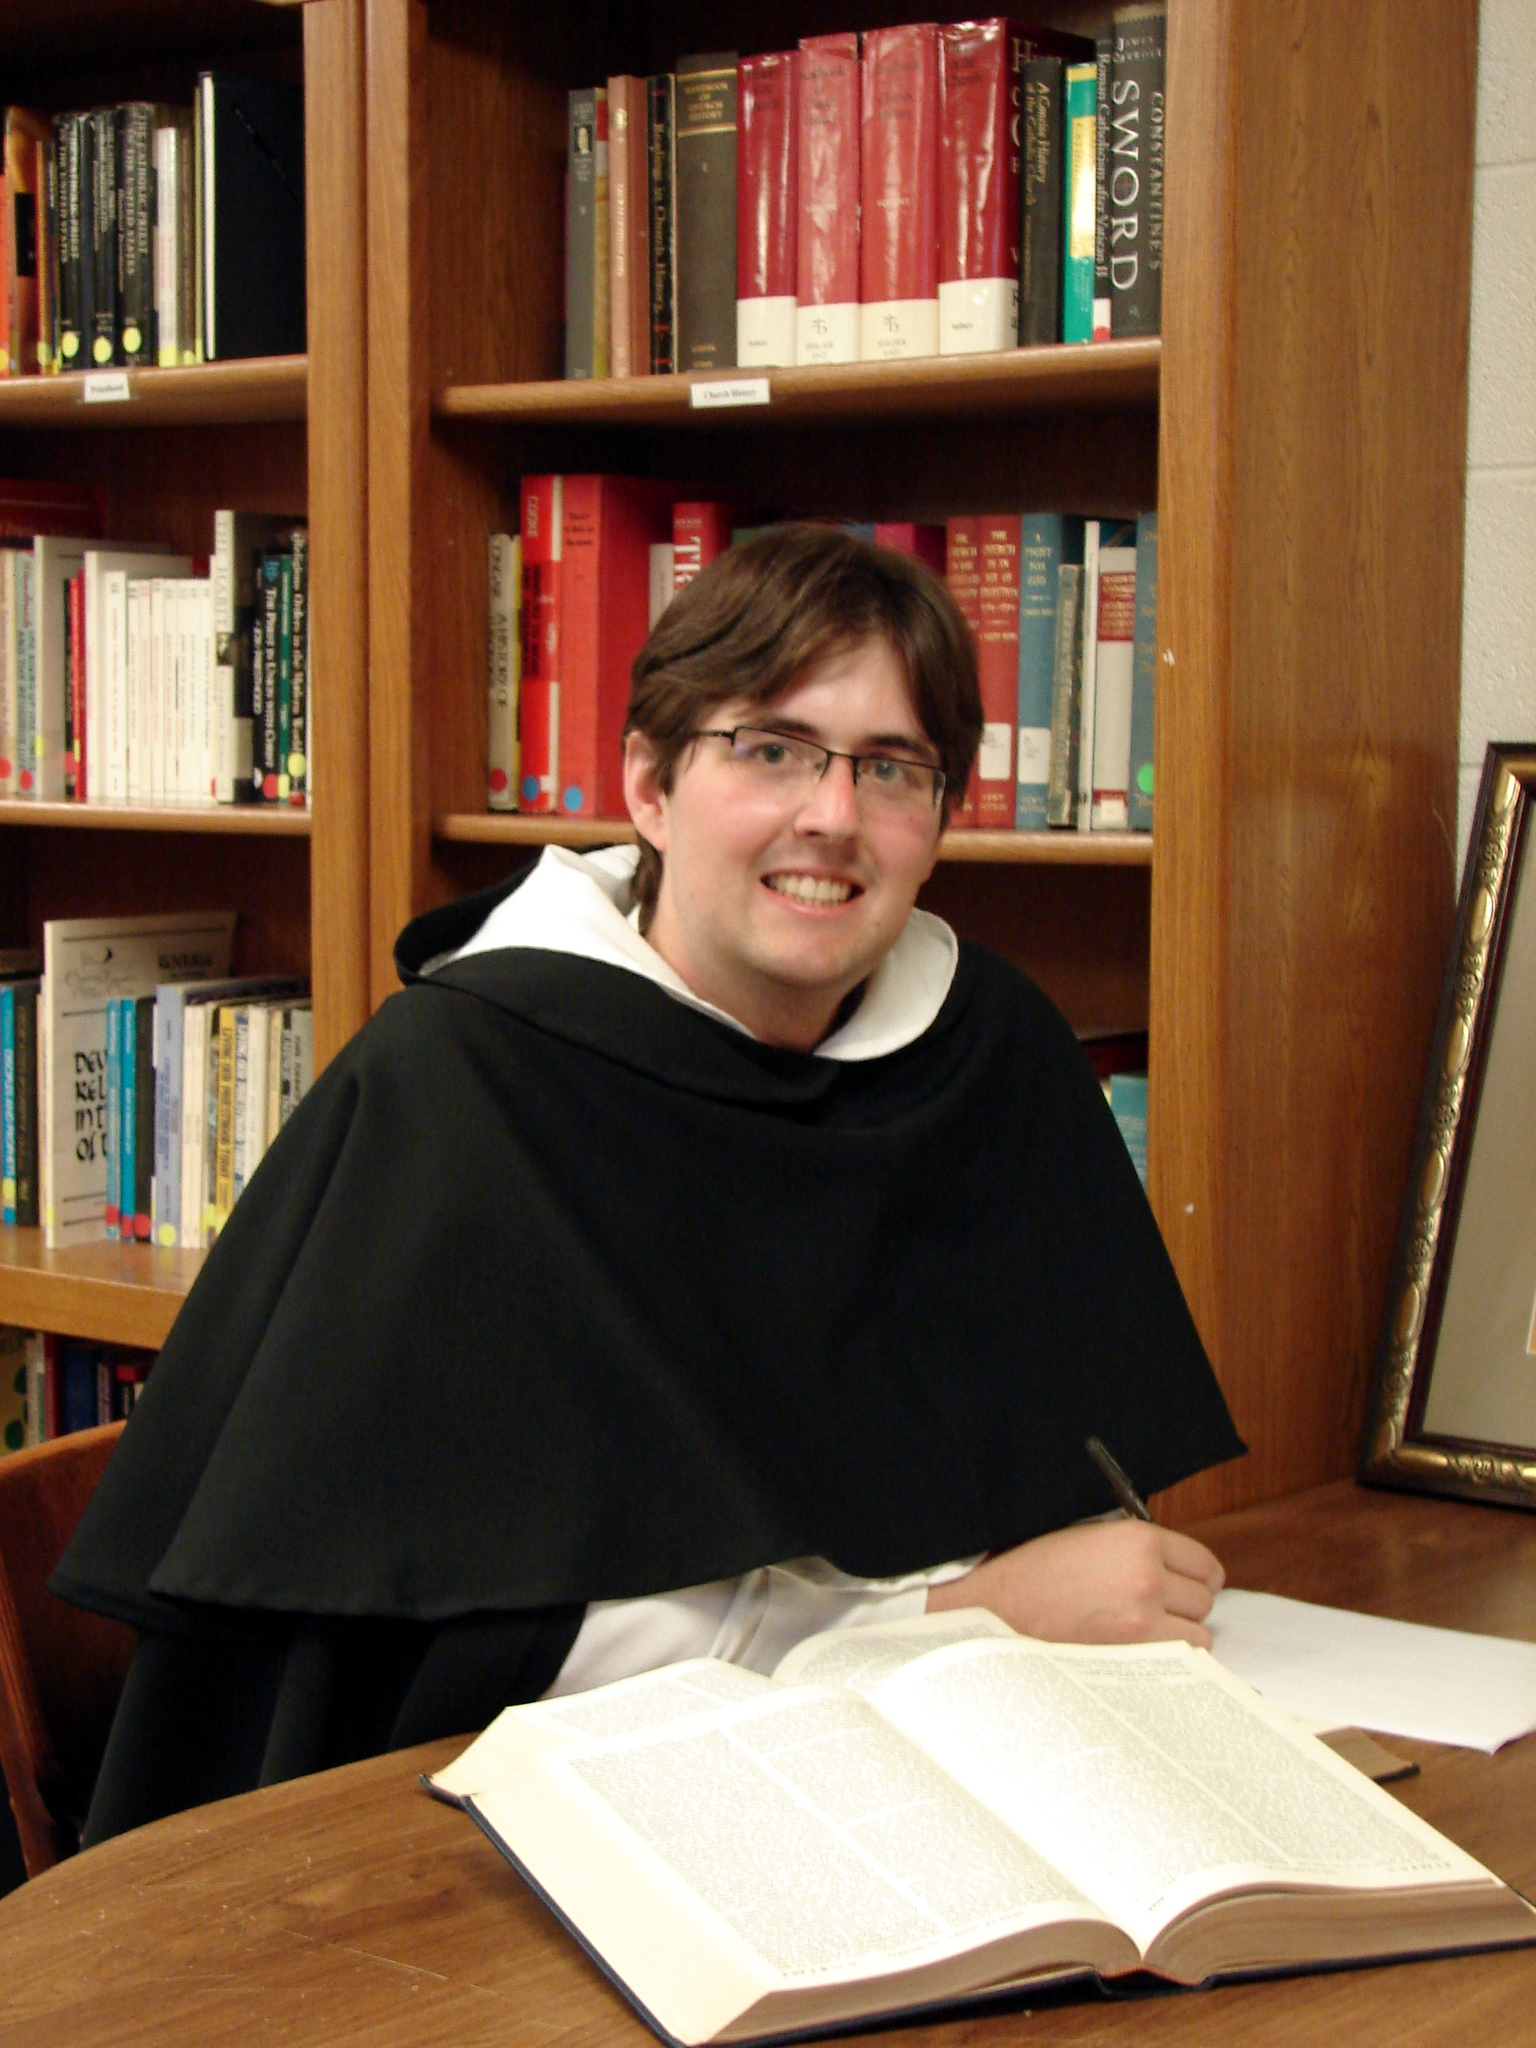 Fr. James Dominic Rooney, OP-Publications book cover